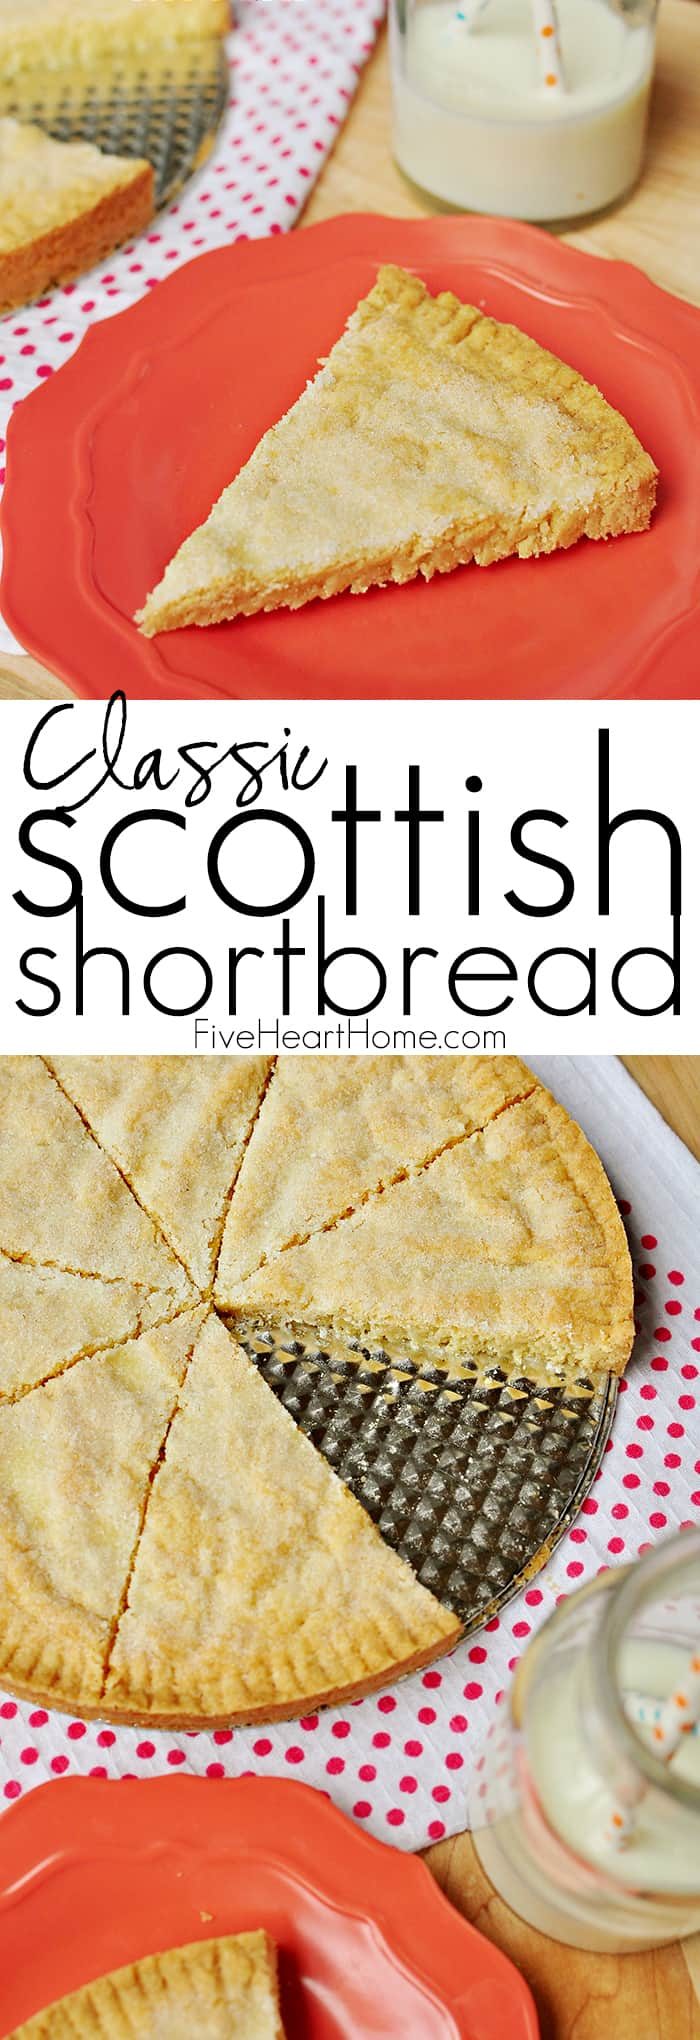 Classic Scottish Shortbread ~ rich, buttery shortbread comes together with just five simple ingredients and is oven-ready in less than five minutes! | FiveHeartHome.com